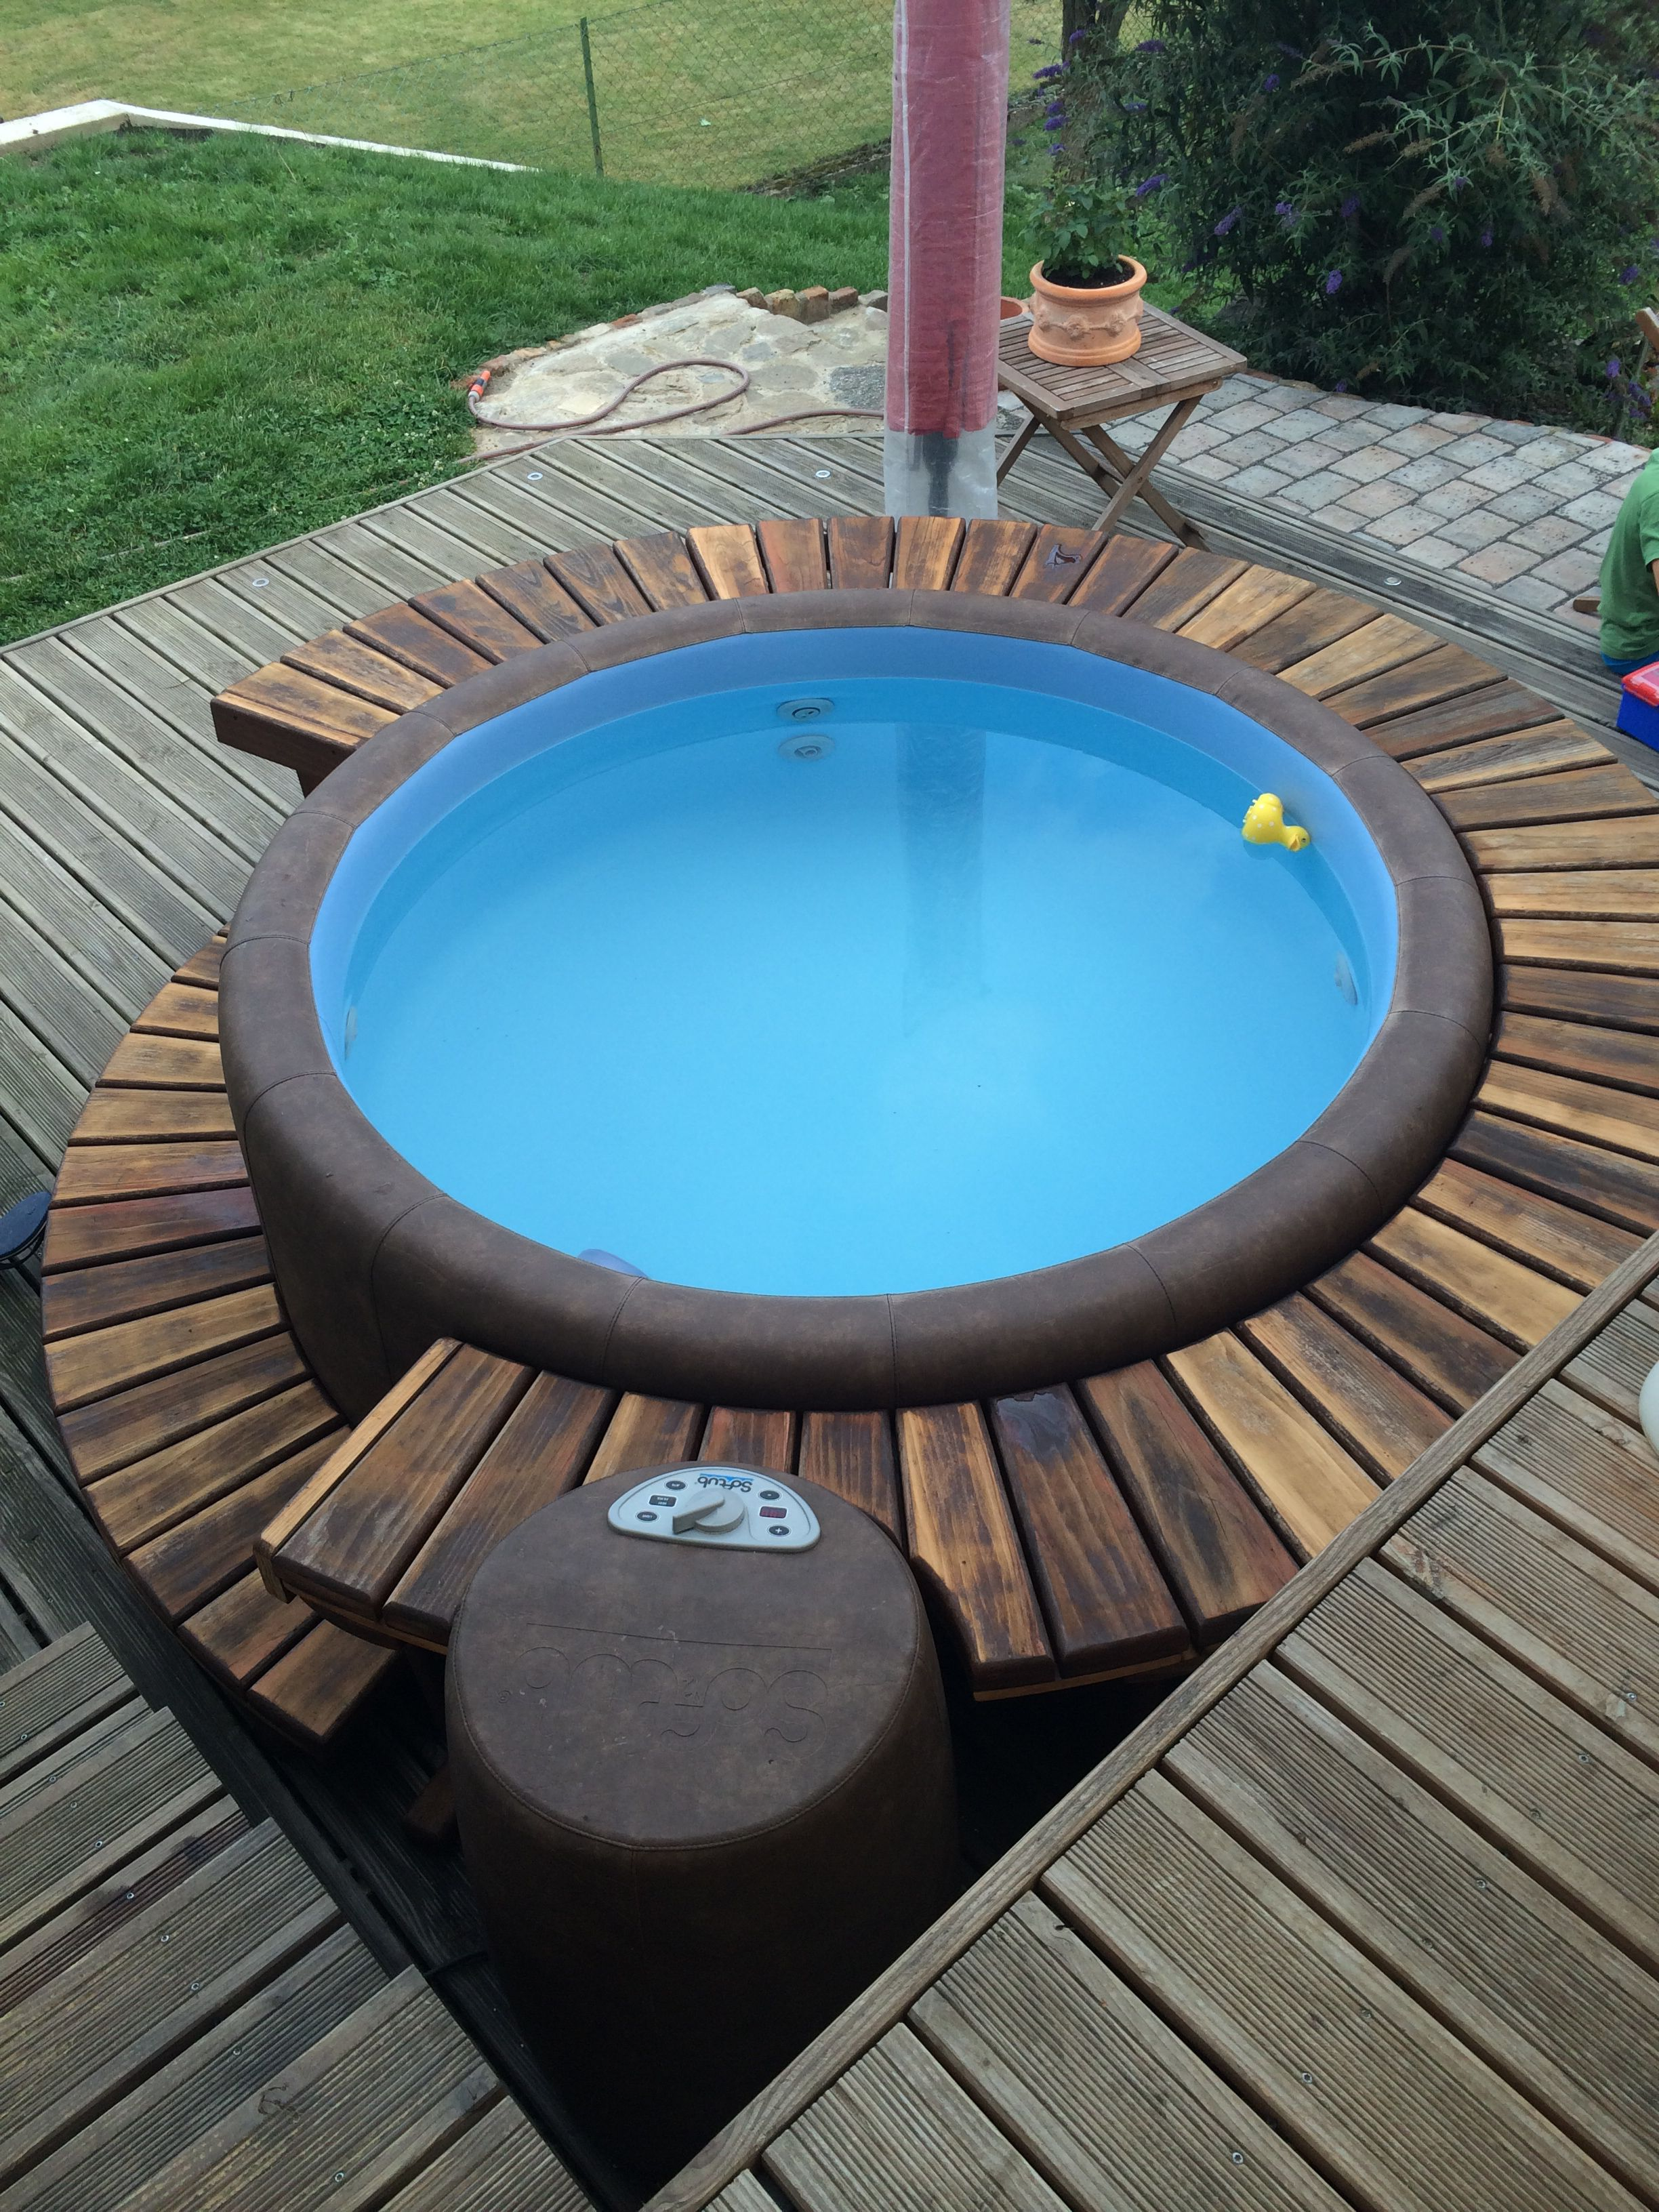 Whirlpool on the Patio | outdoor | Pinterest | Patios, Hot tubs and Tubs